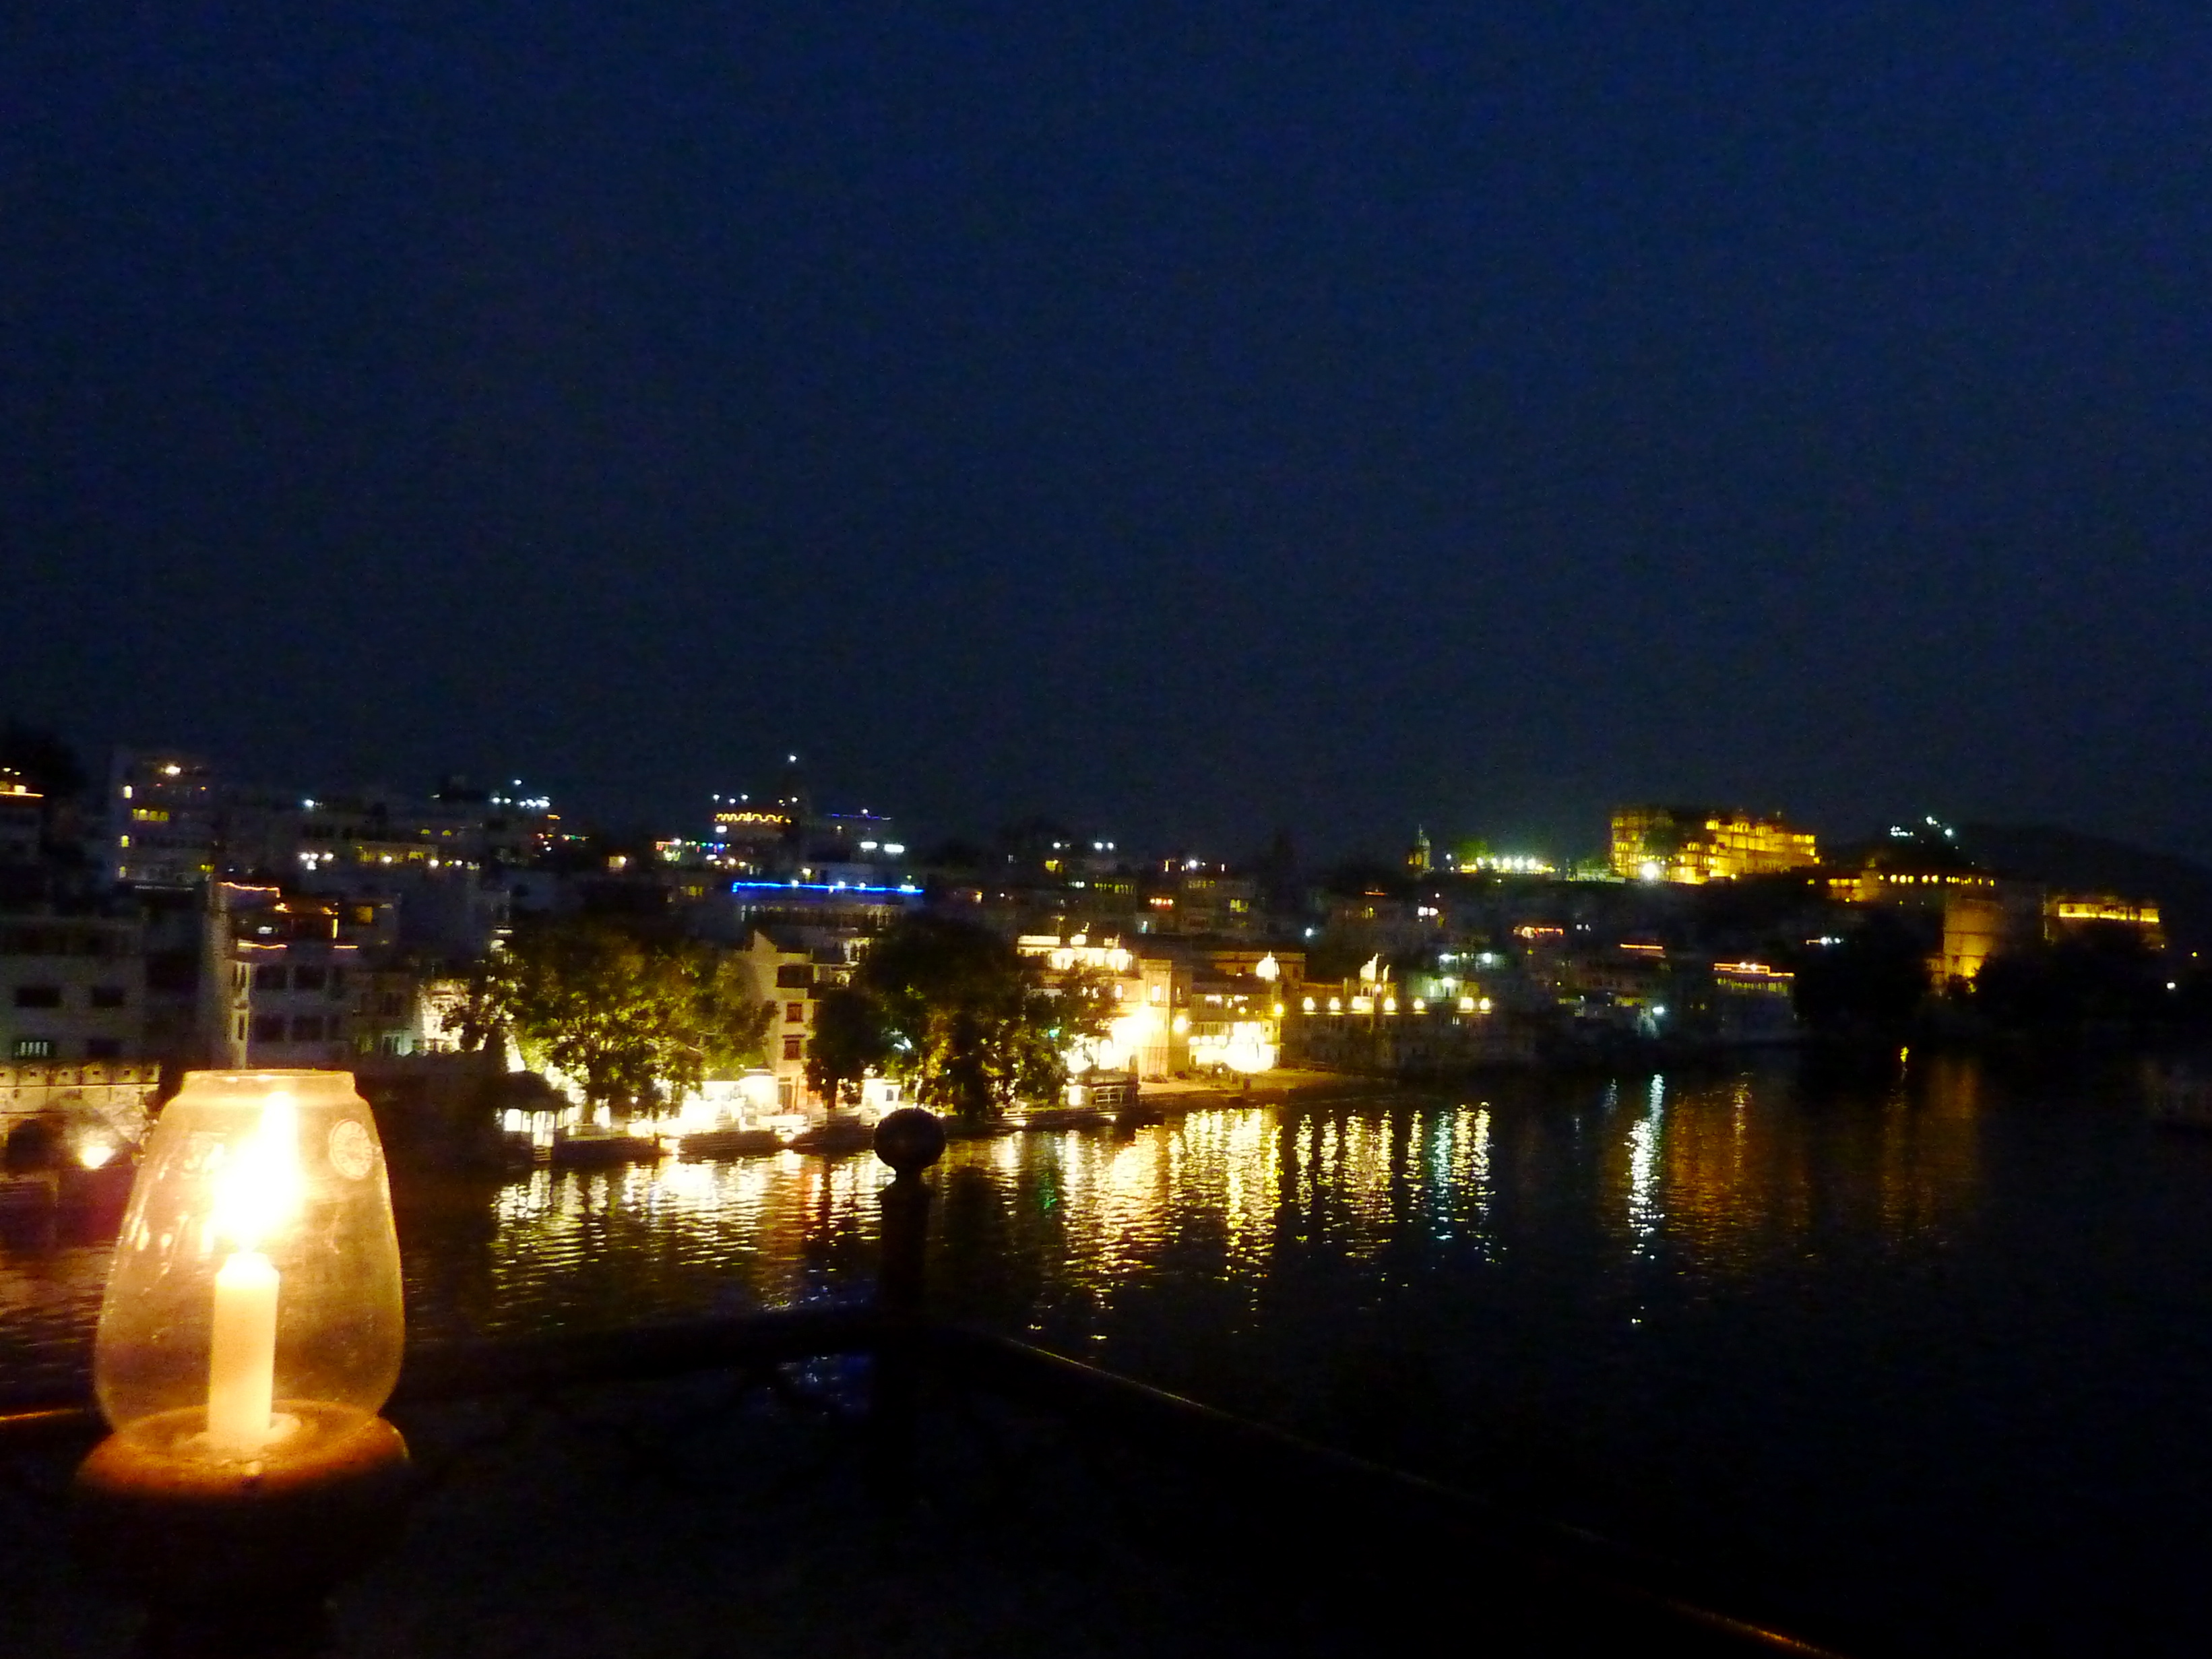 Night in Udaipur